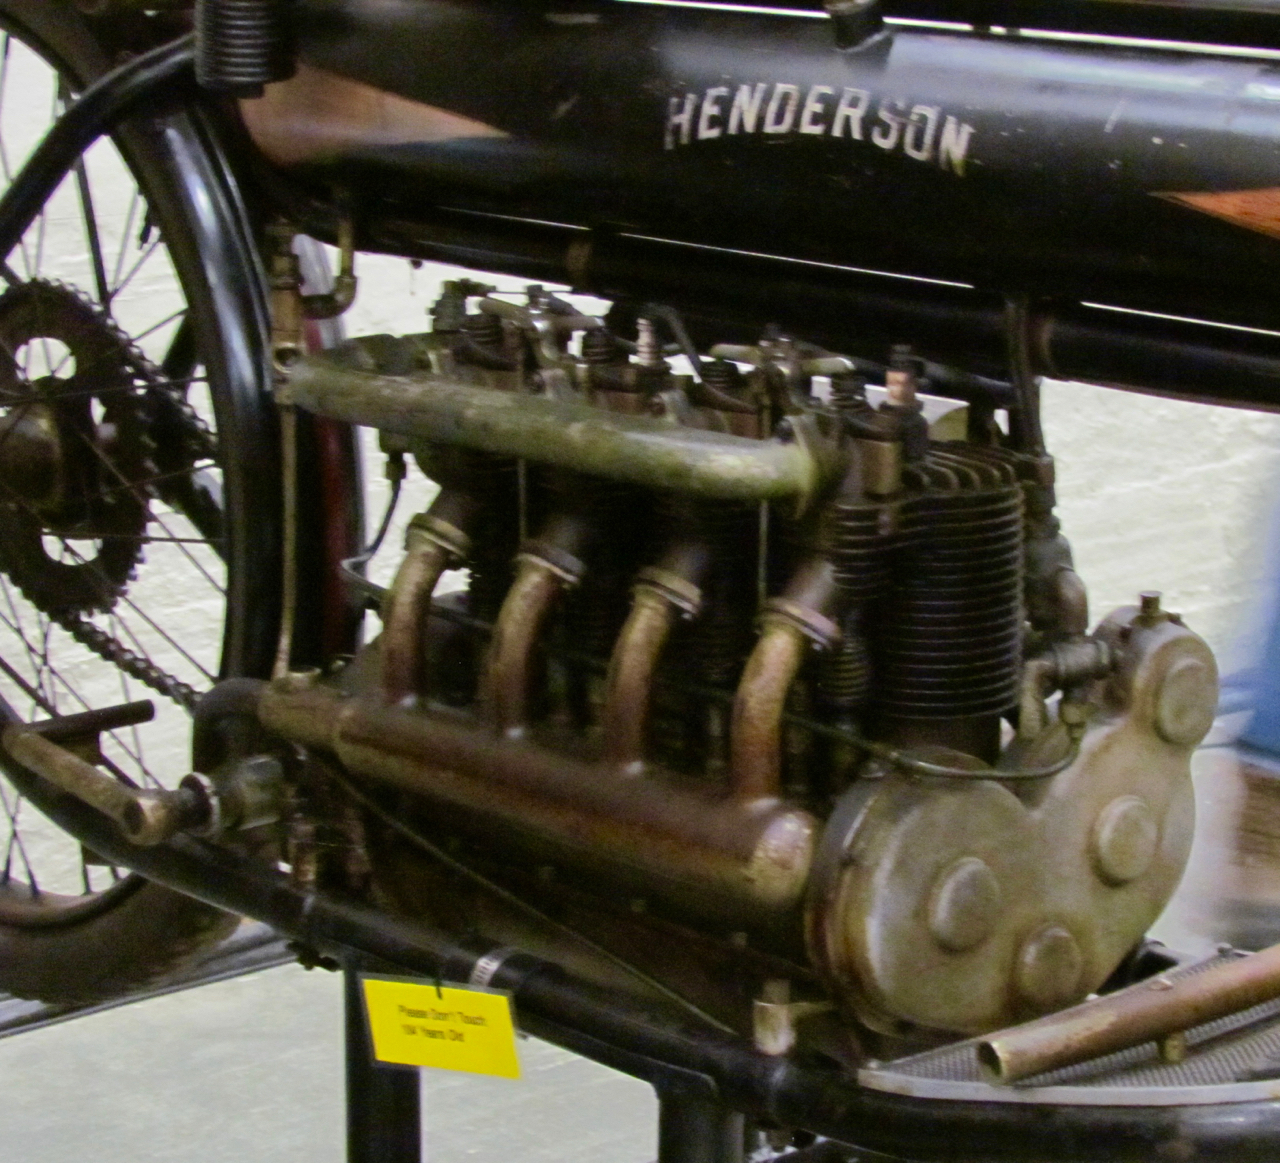 William Henderson was a teenager when he designed this four-cylinder engine